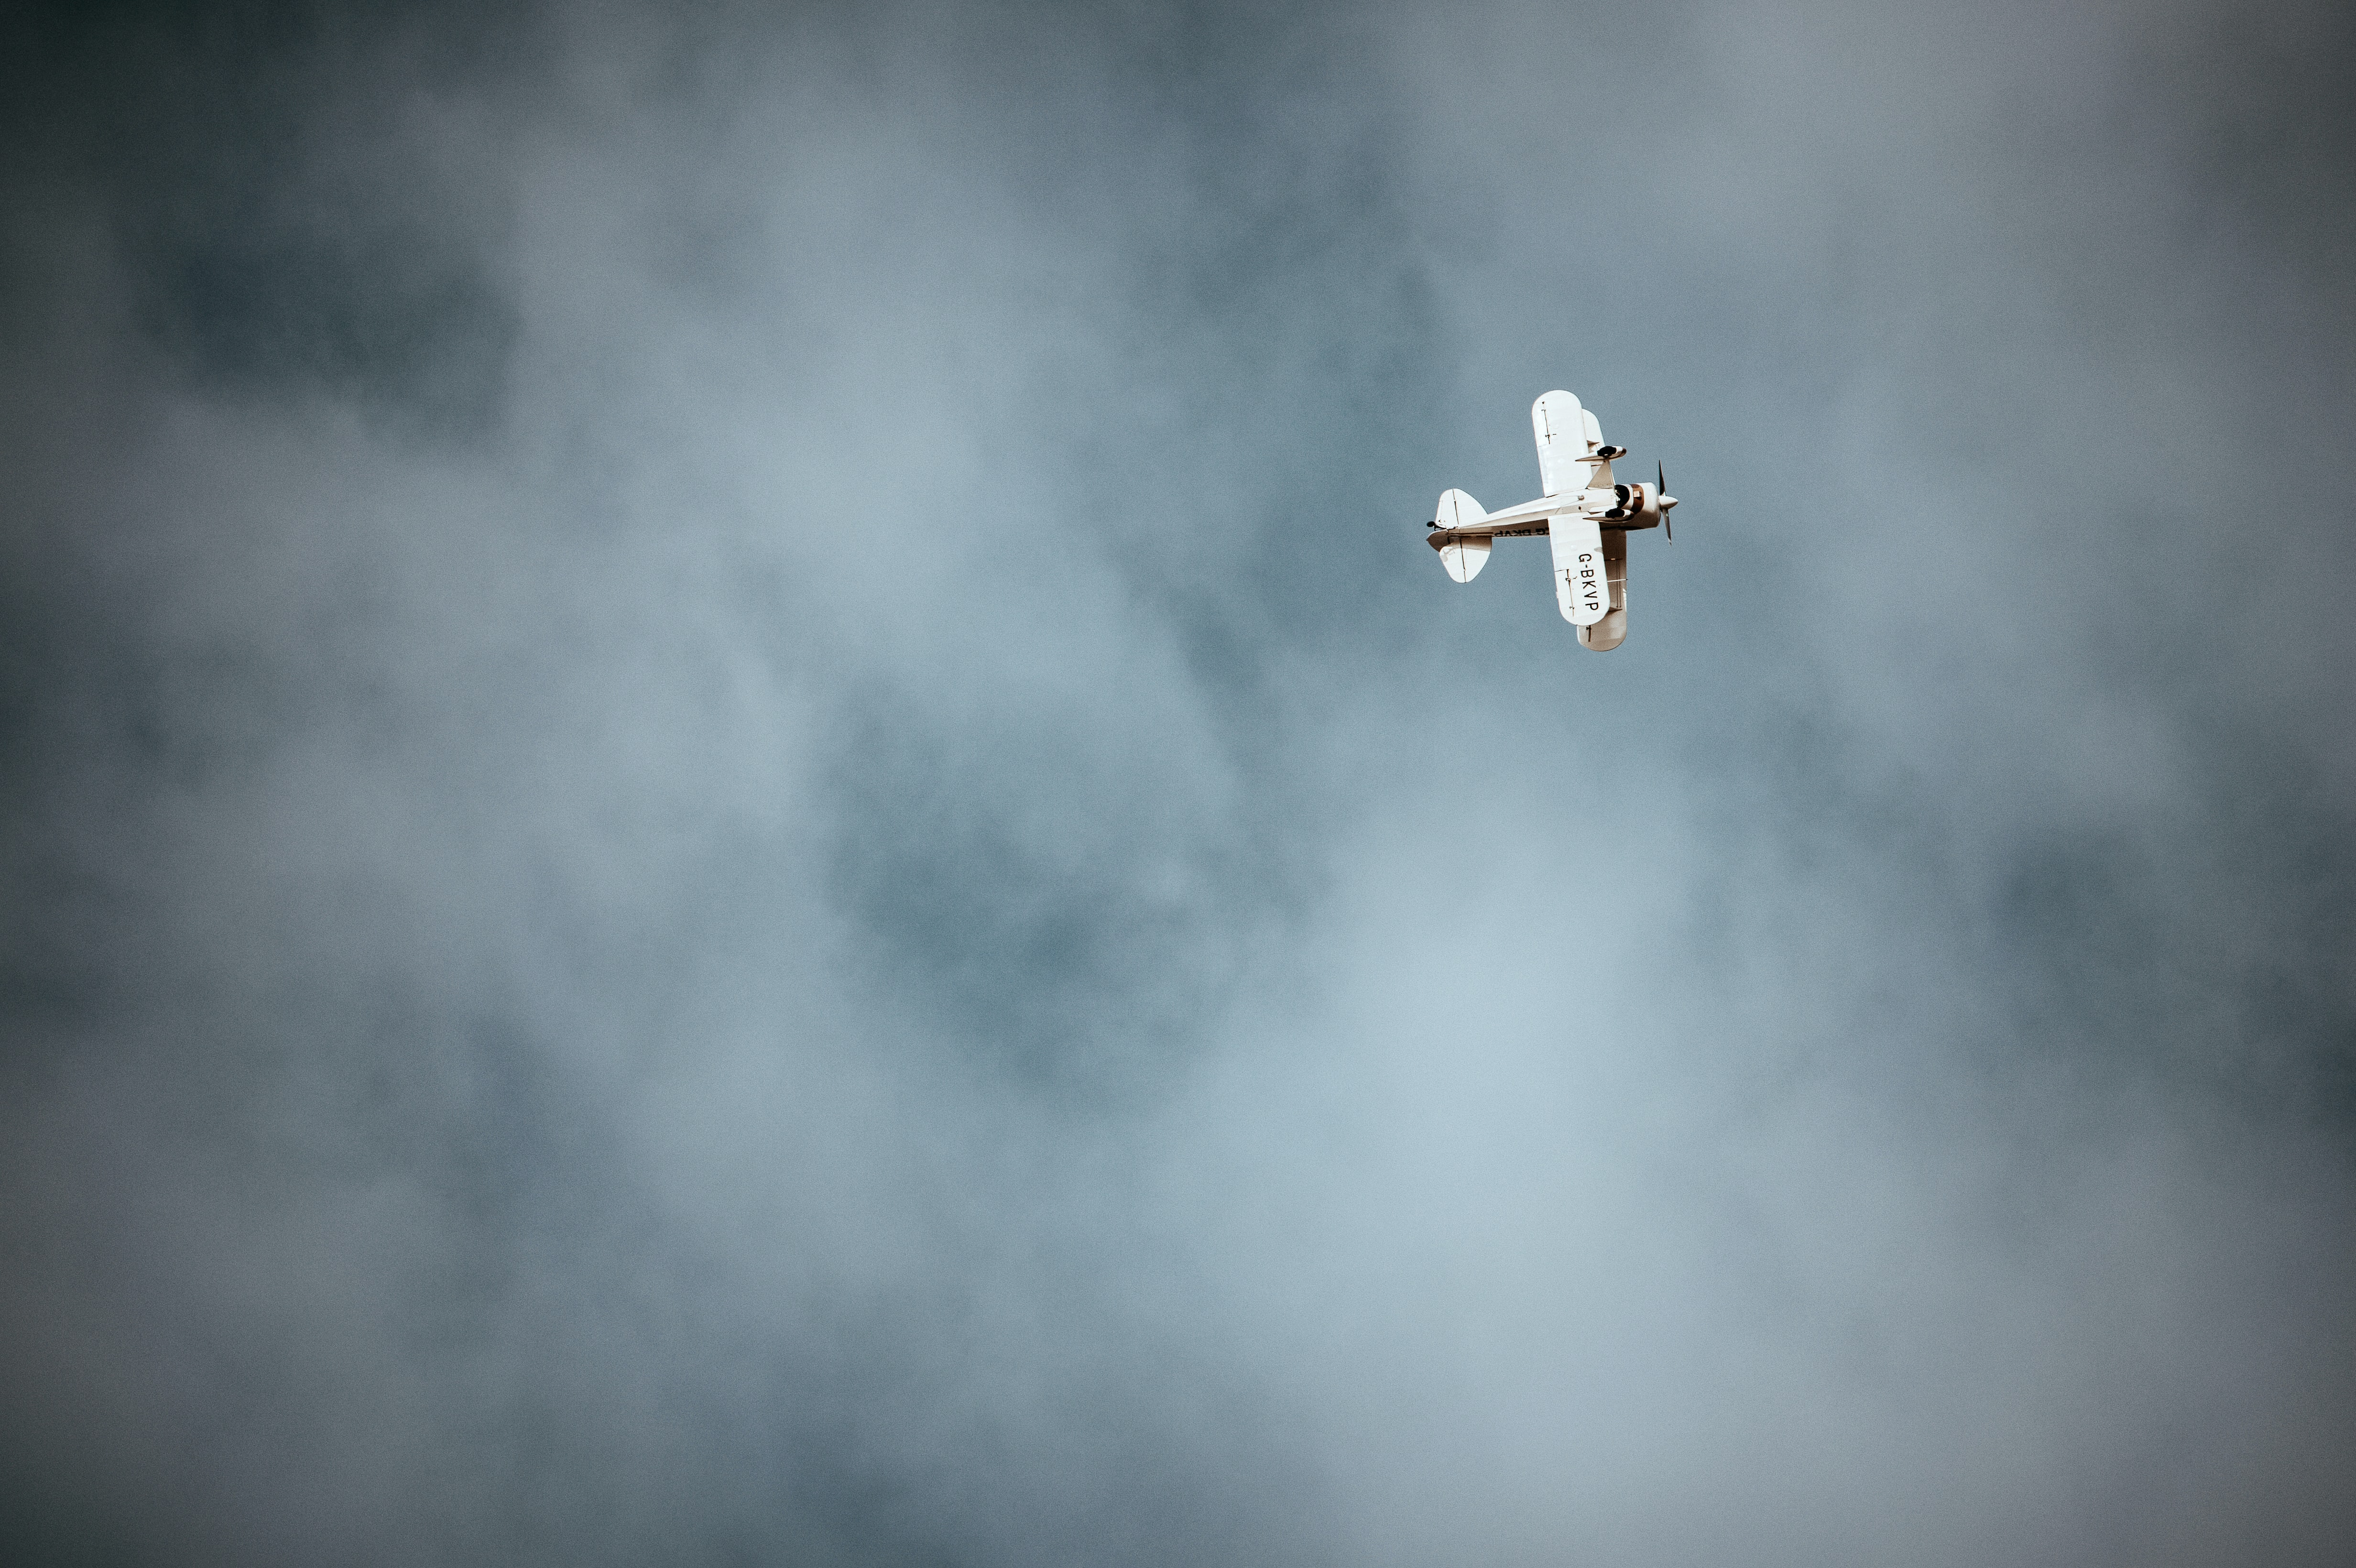 plane flying under white clouds during daytime